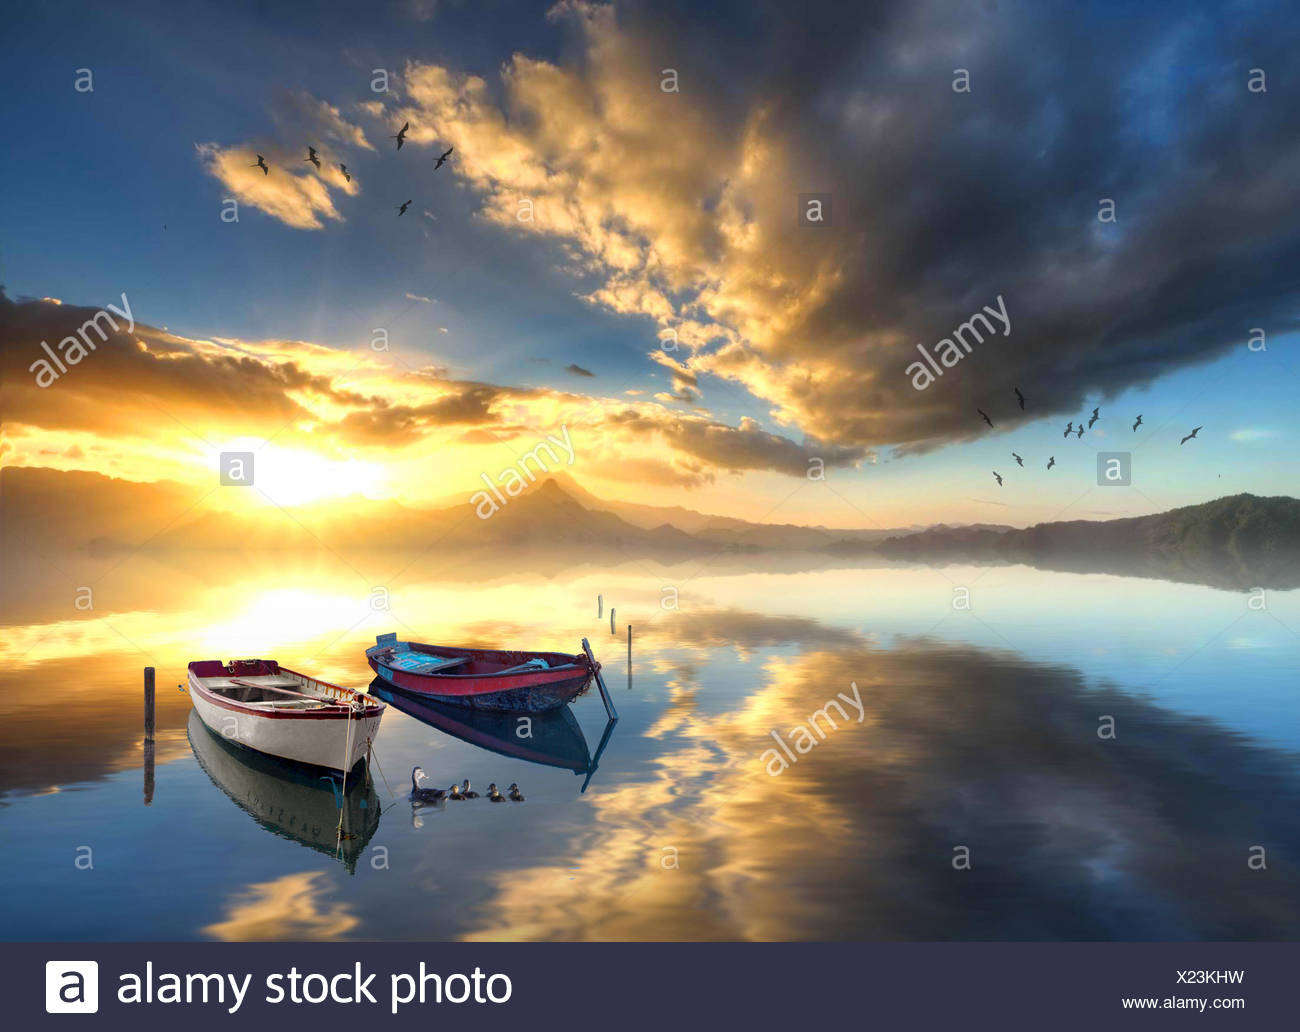 Two rowboats anchored in calm sea at sunrise - Stock Image